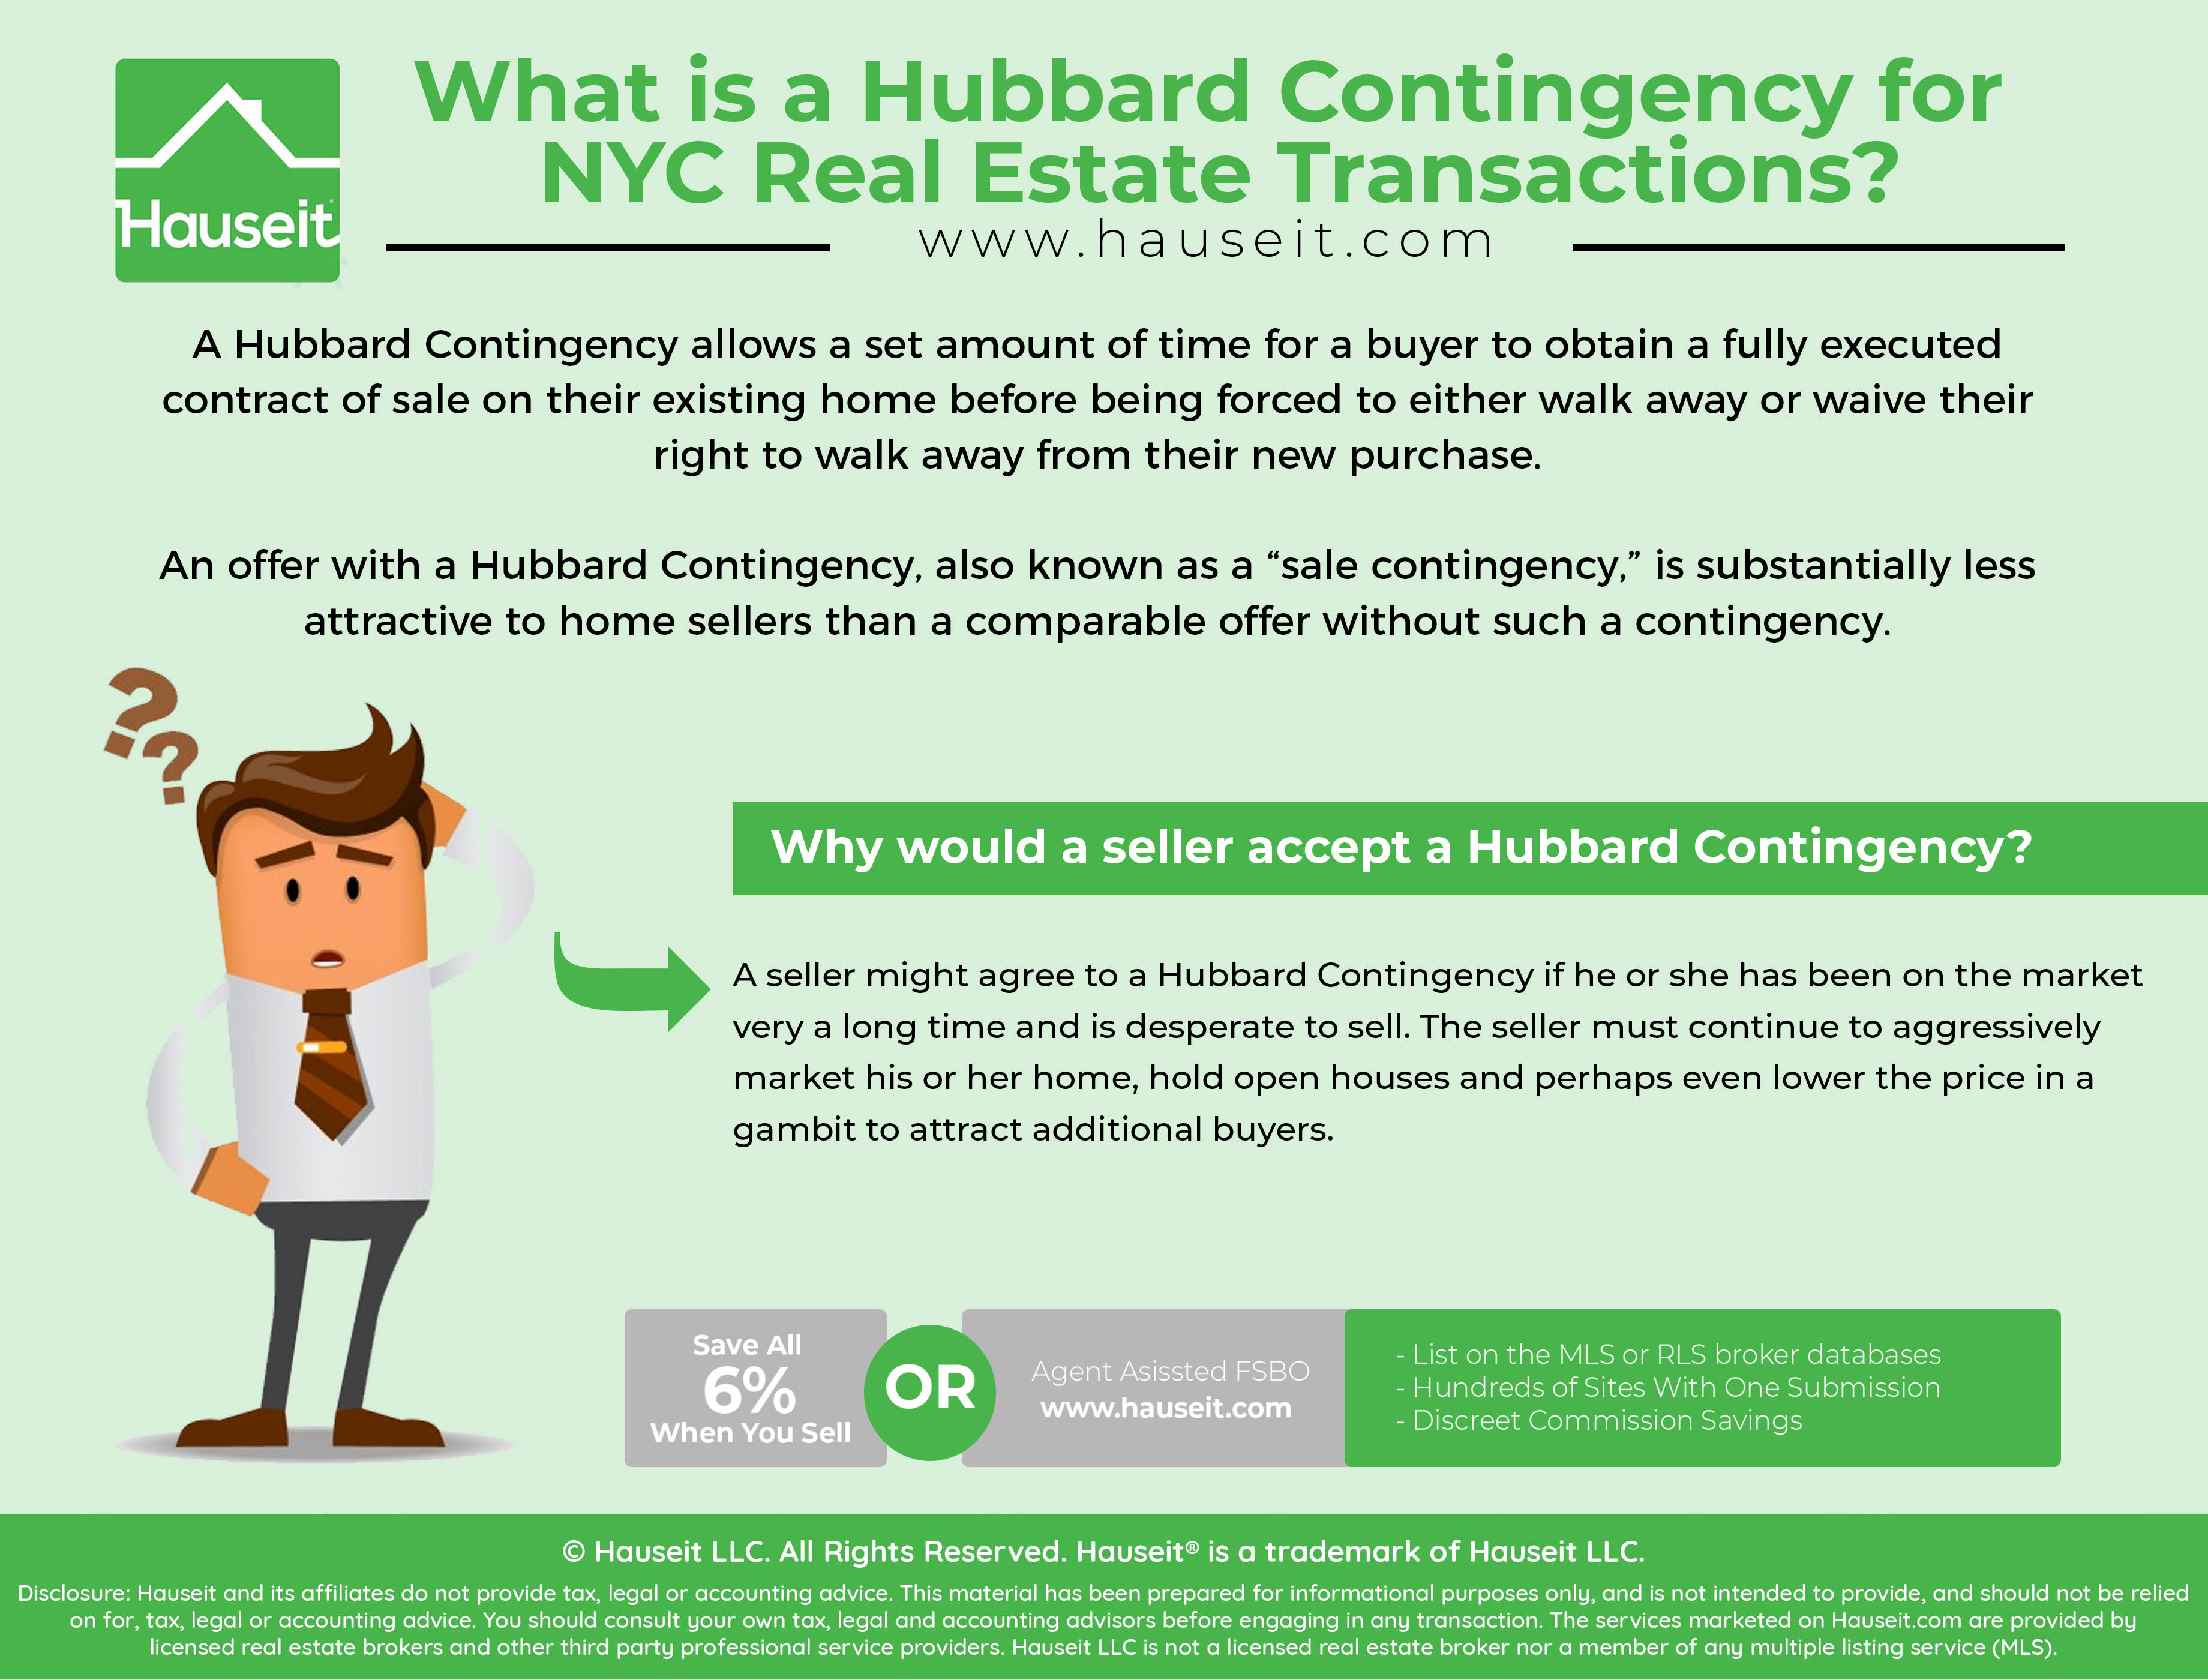 A Hubbard Contingency allows a set amount of time for a buyer to obtain a fully executed contract of sale on their existing home before being forced to either walk away or waive their right to walk away from their new purchase.